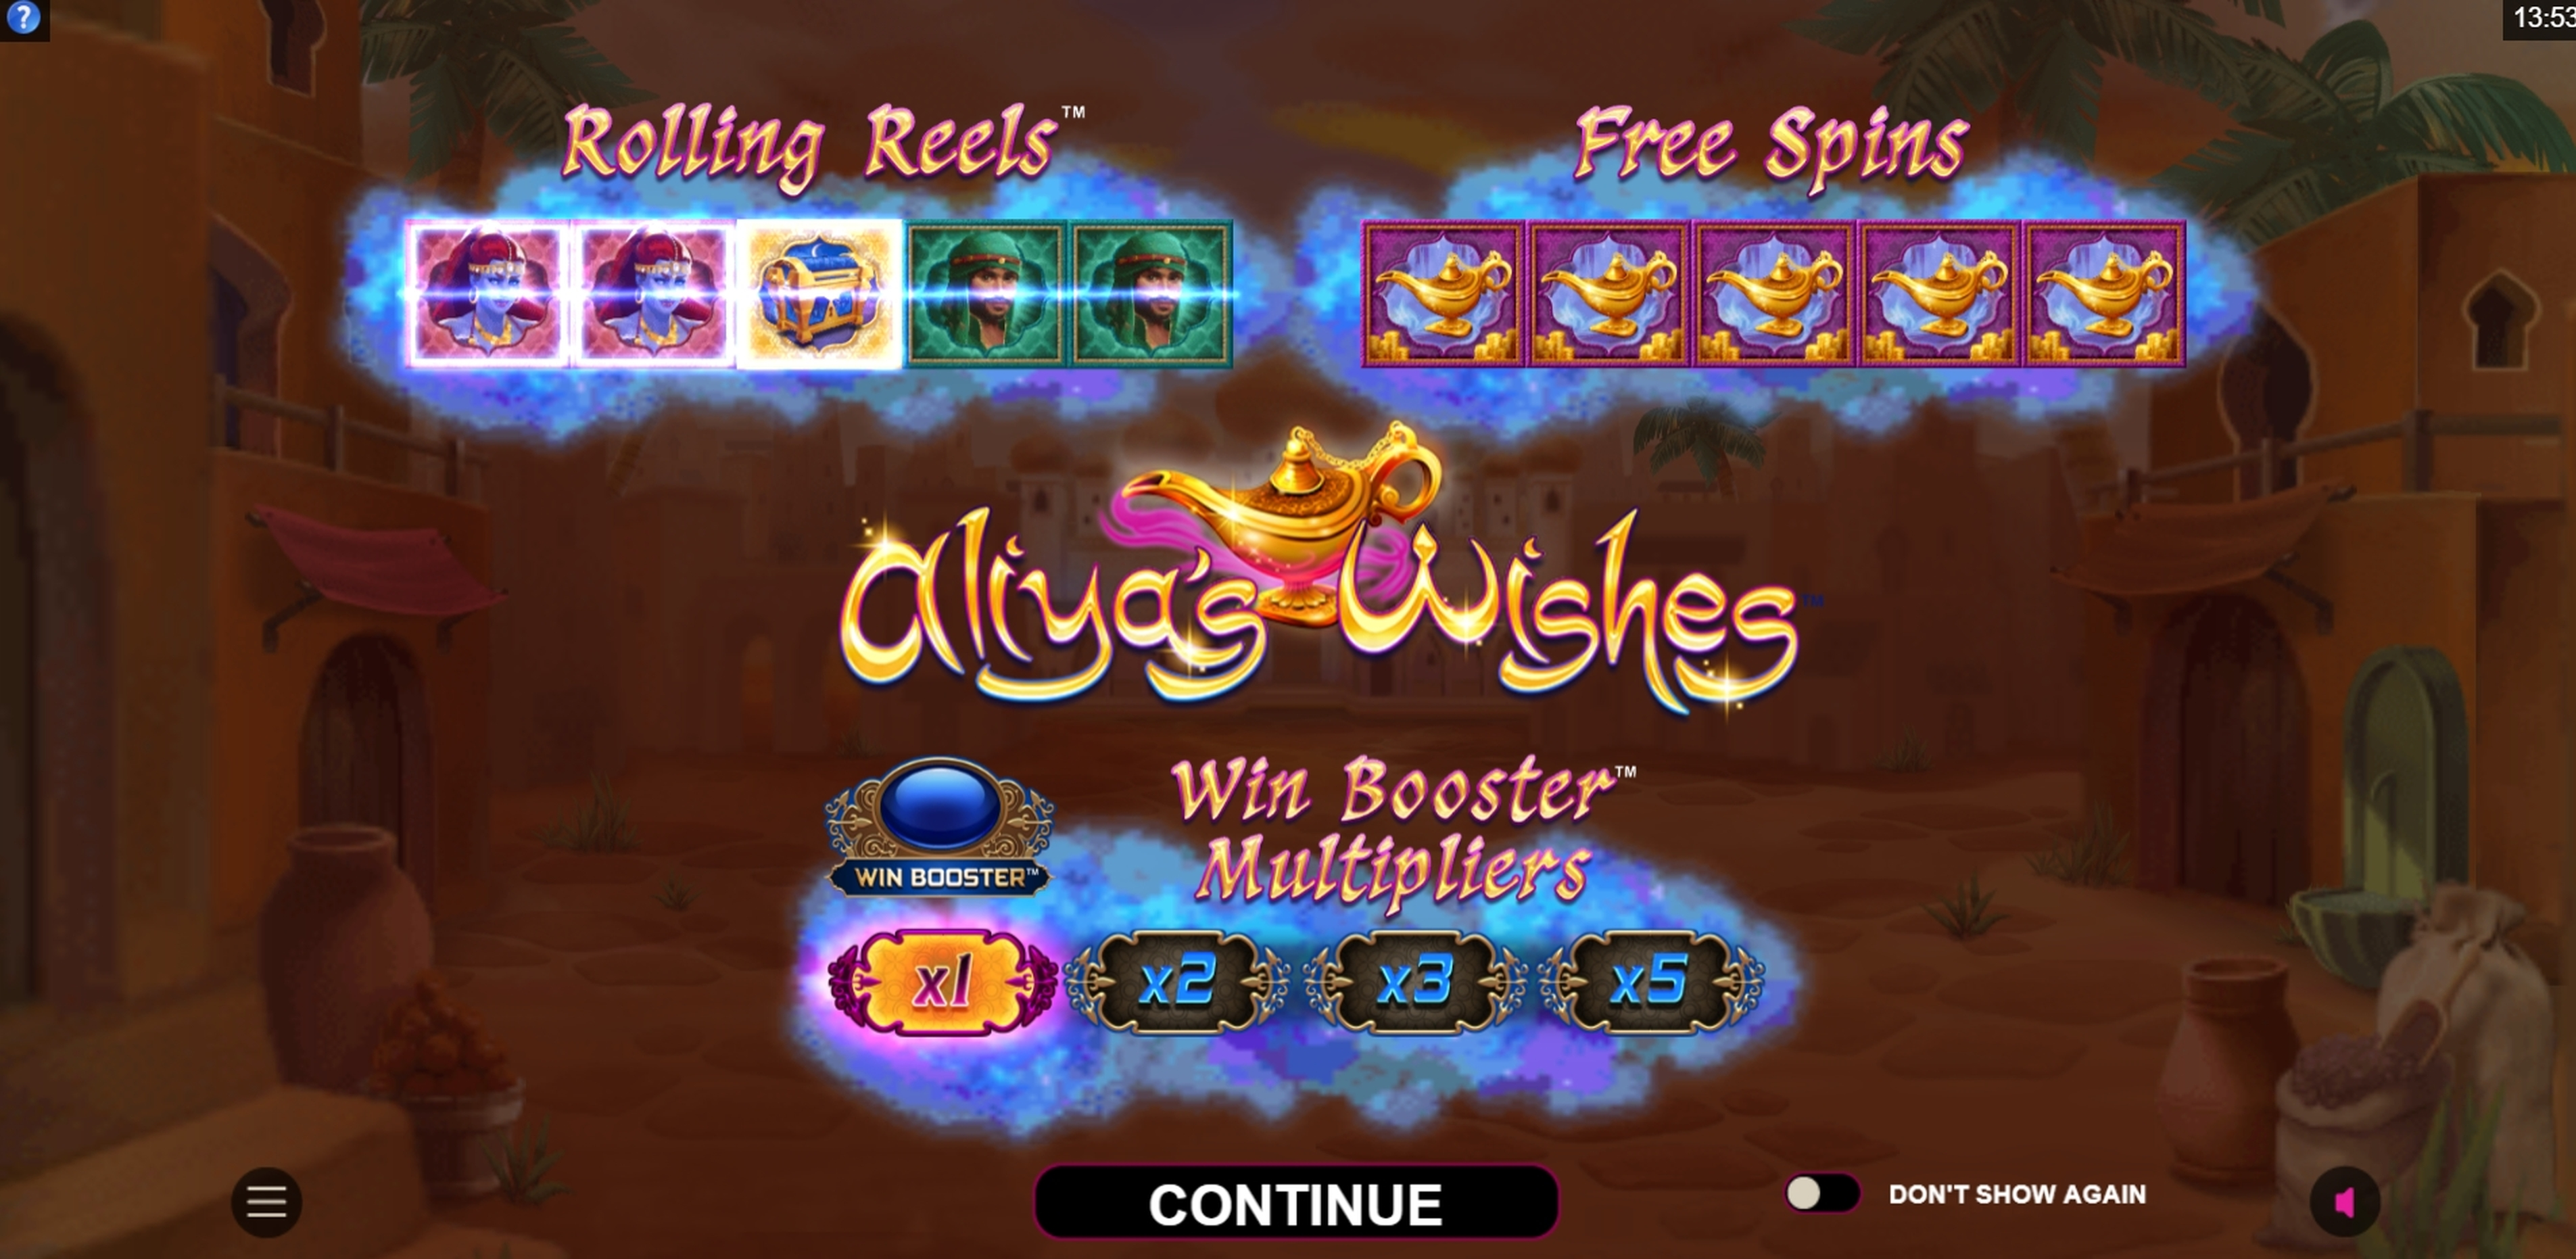 Play Aliyas Wishes Free Casino Slot Game by Fortune Factory Studios